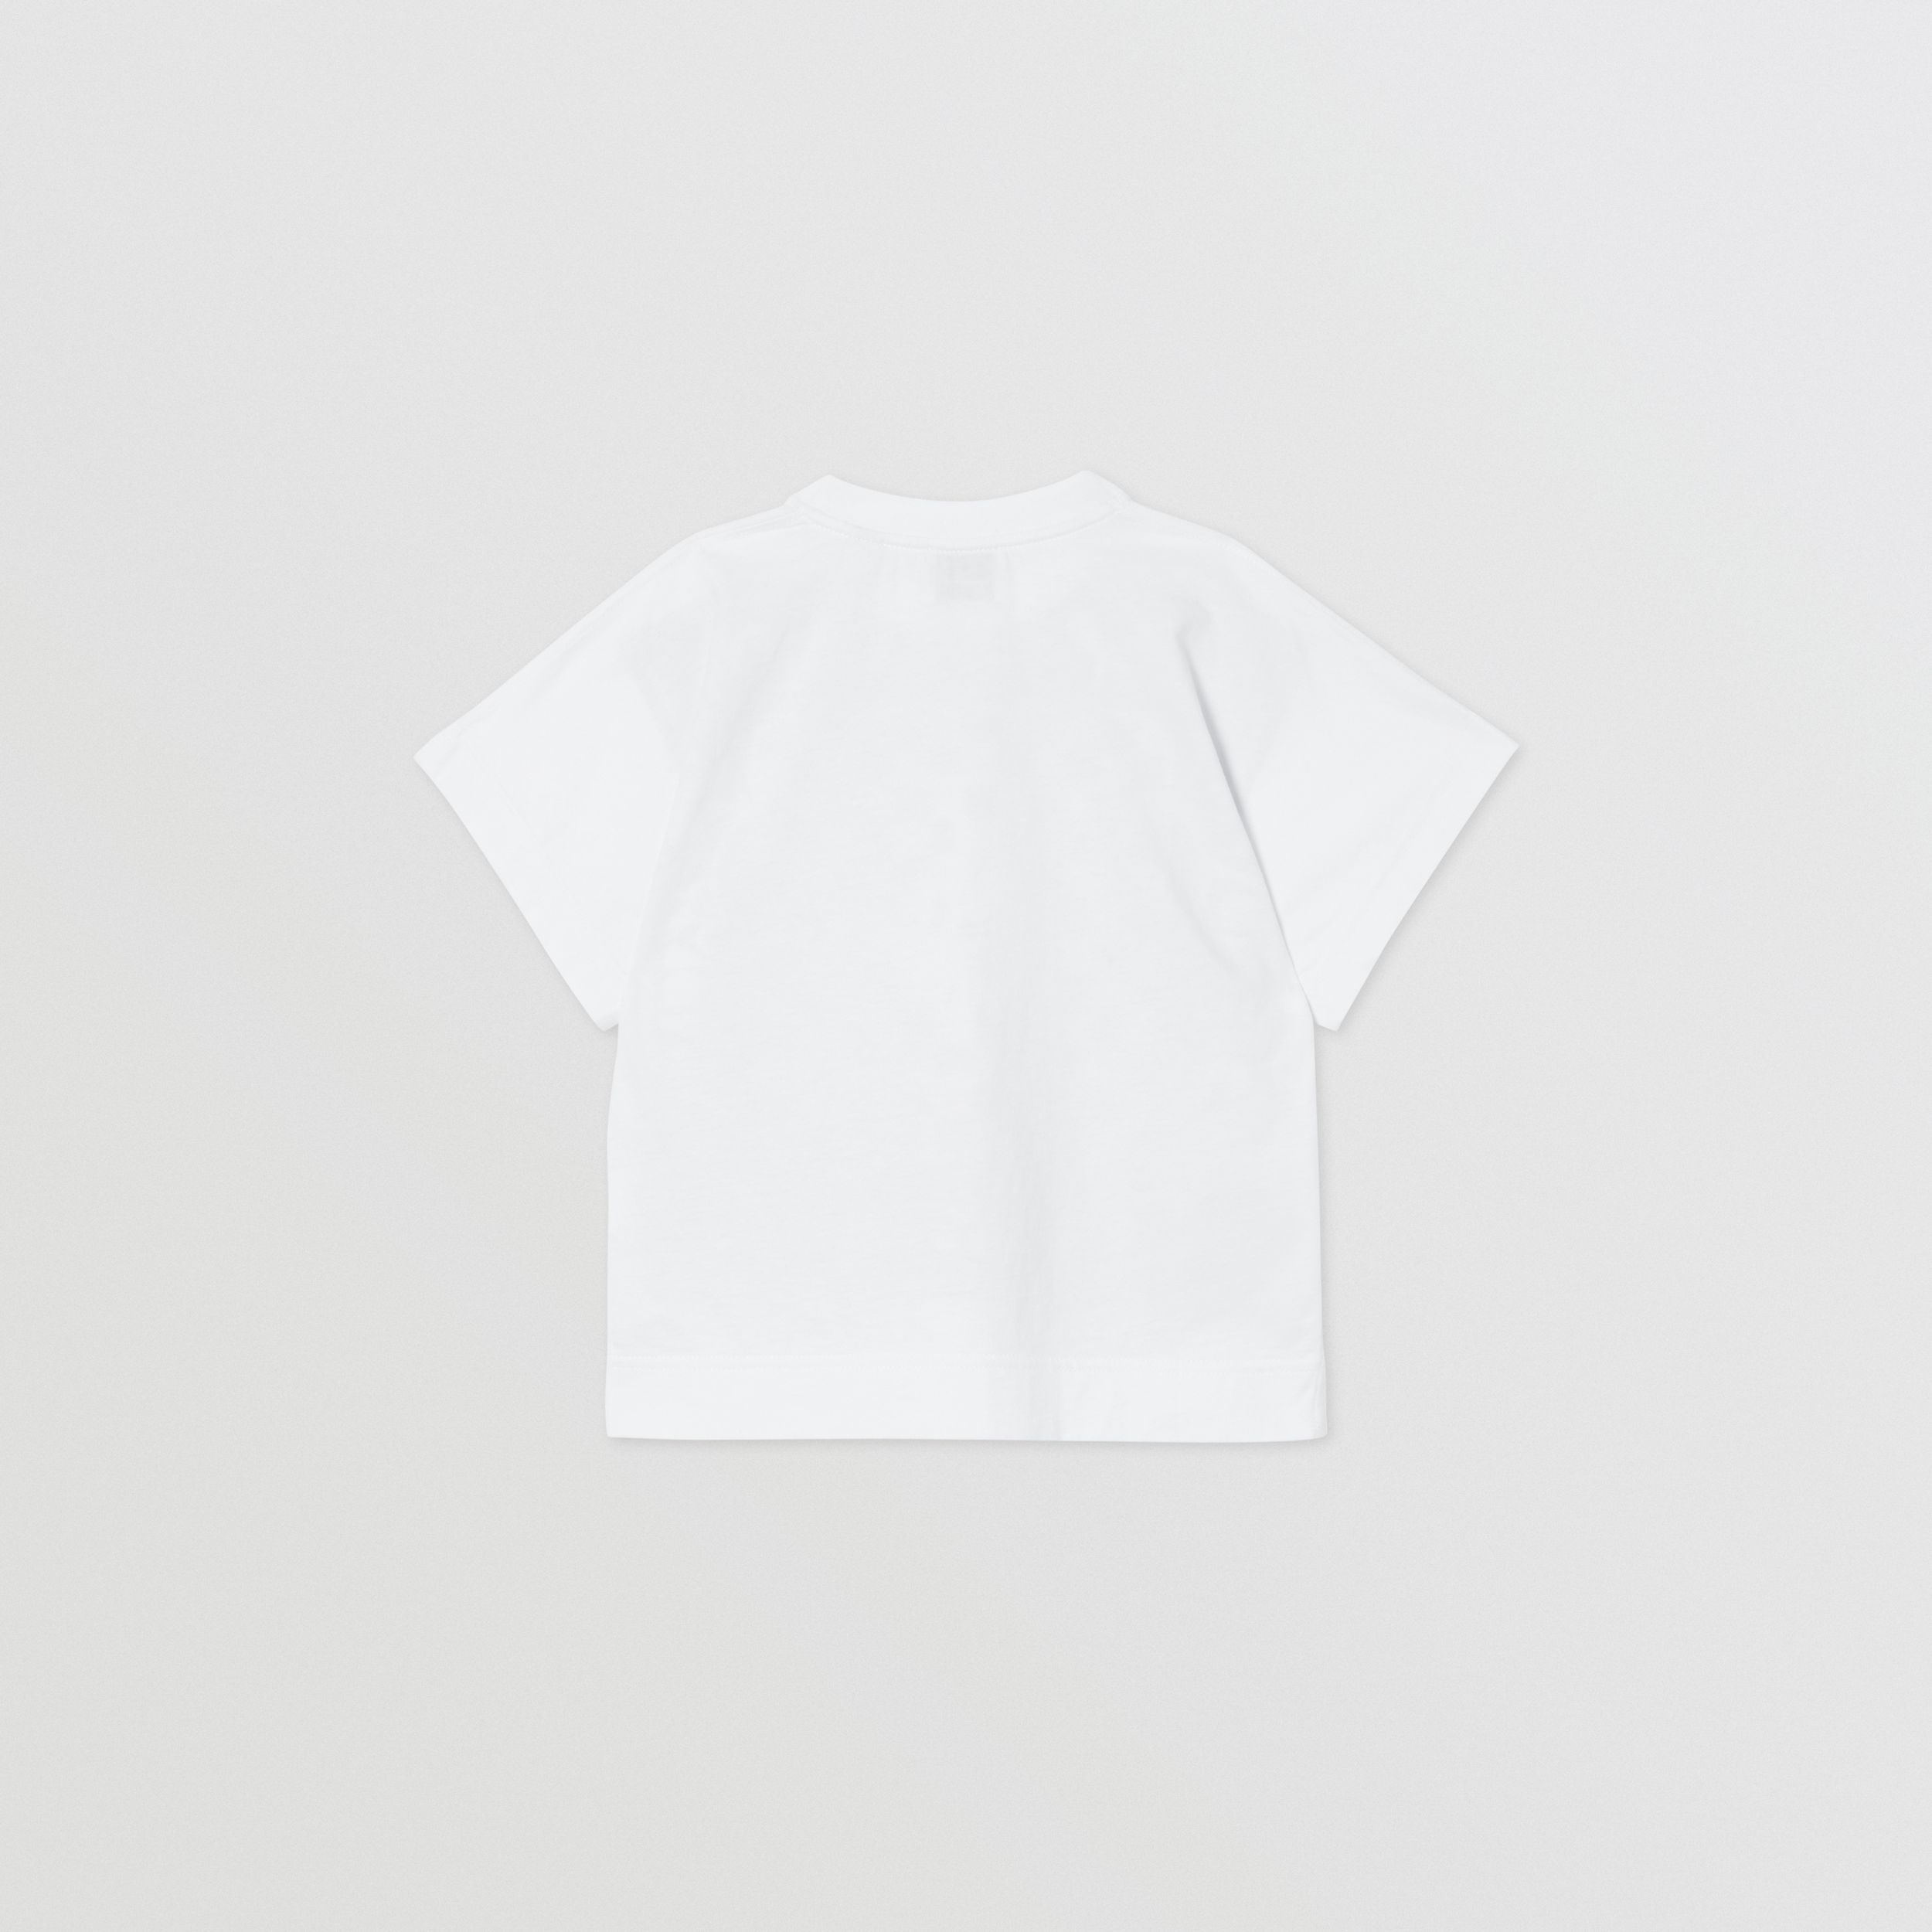 Scarf Print Cotton T-shirt in White | Burberry Singapore - 4